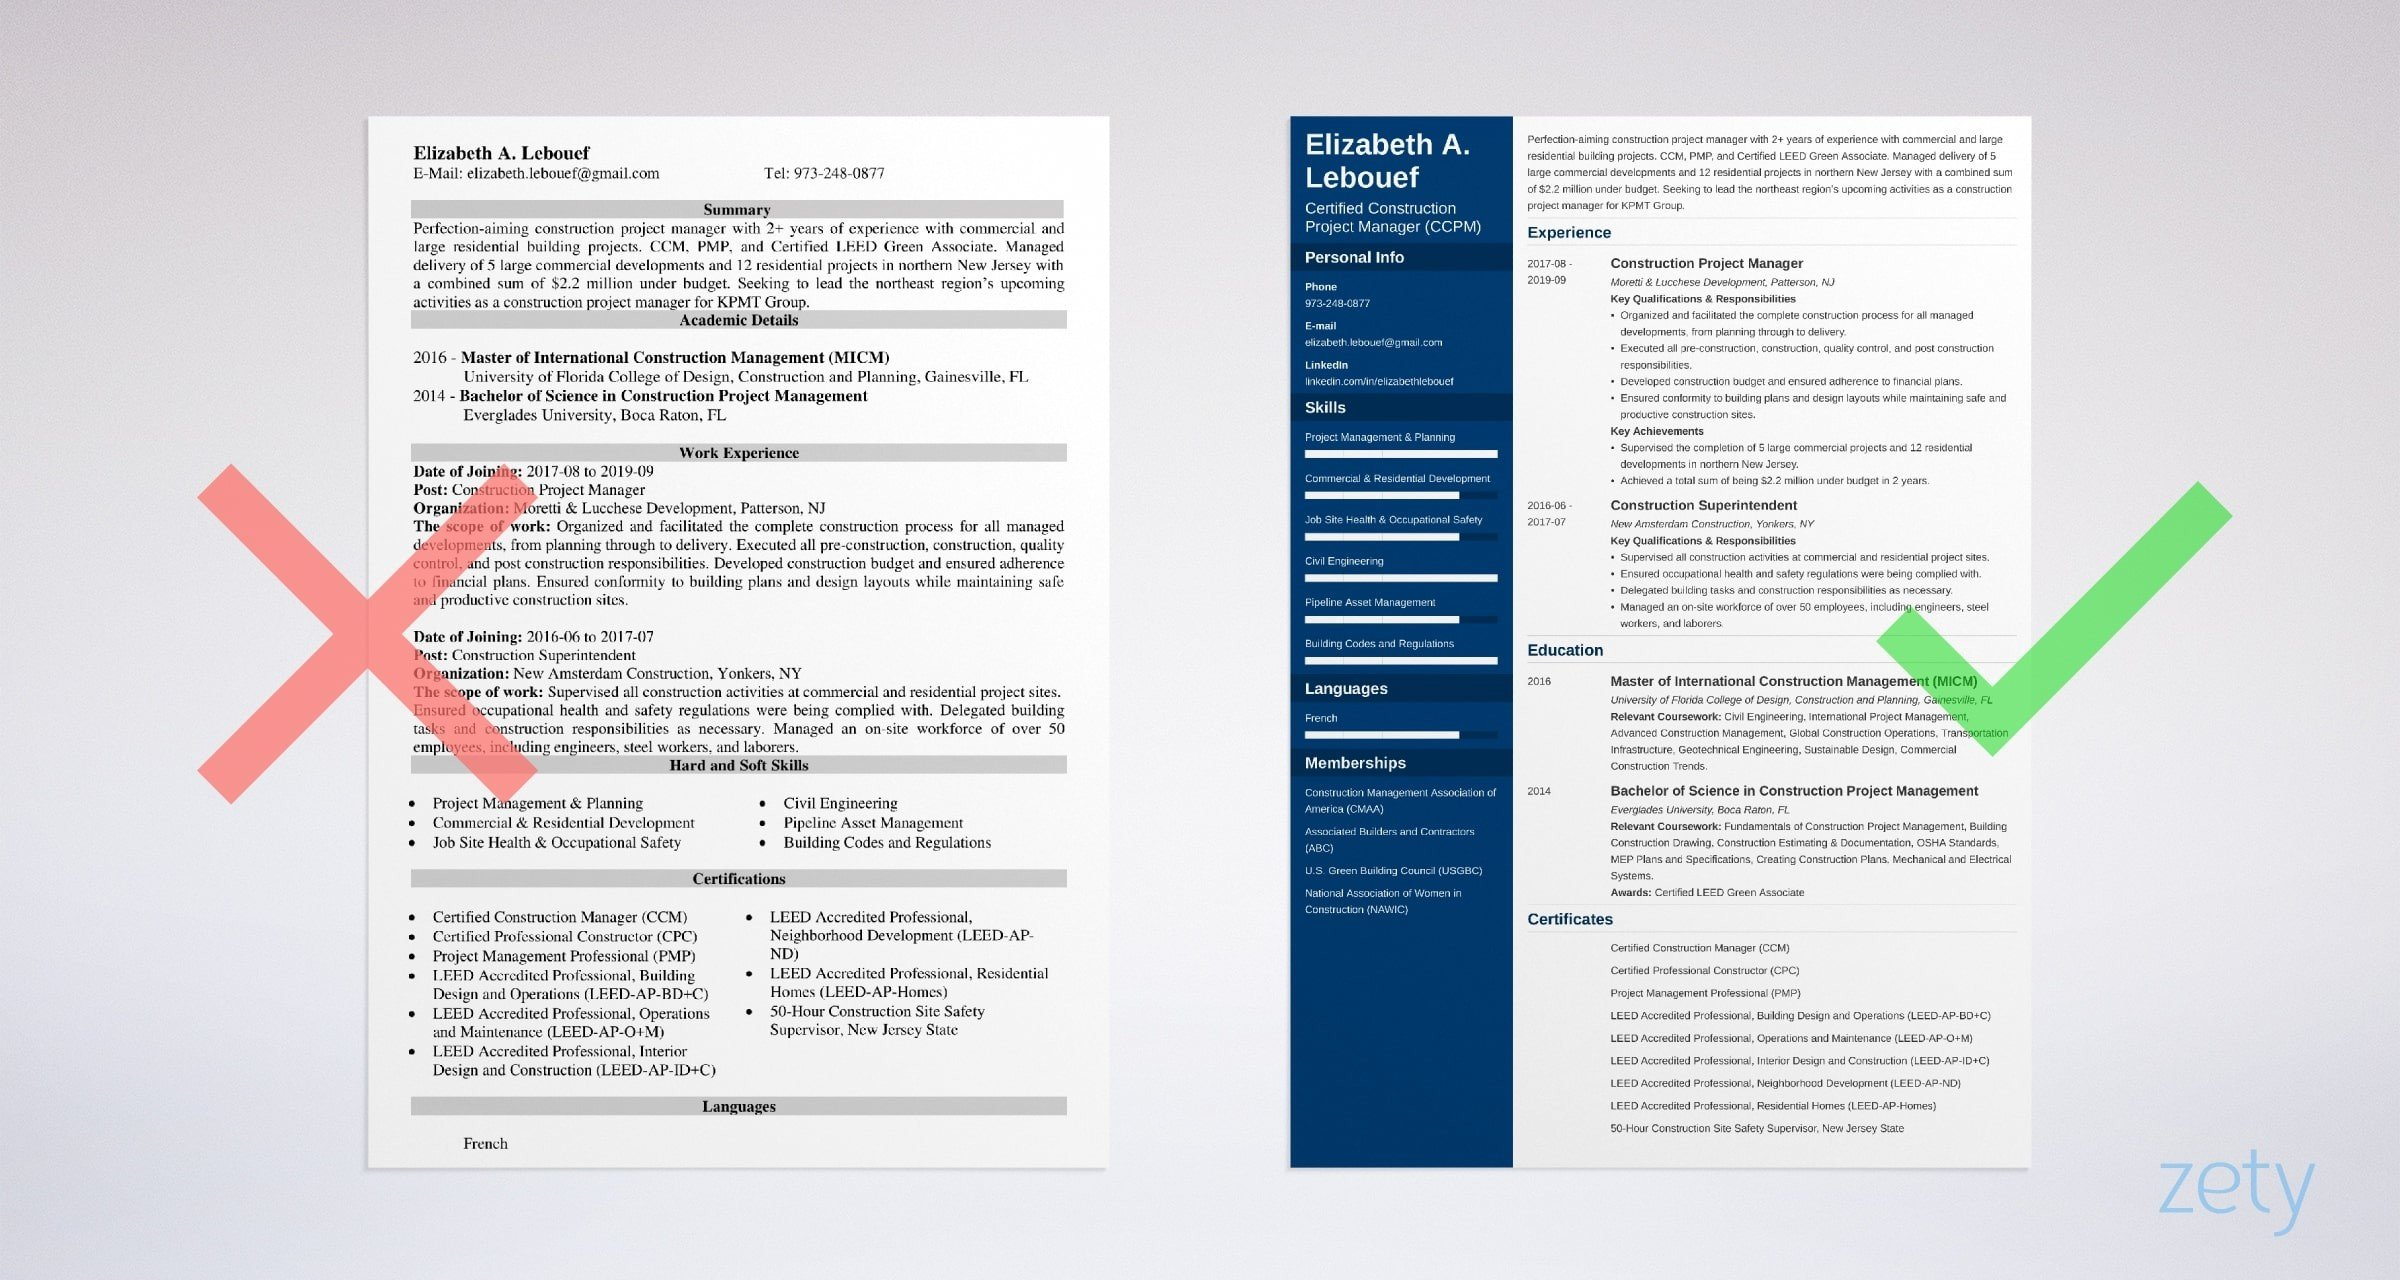 Construction Project Manager Resume: Sample & Guide